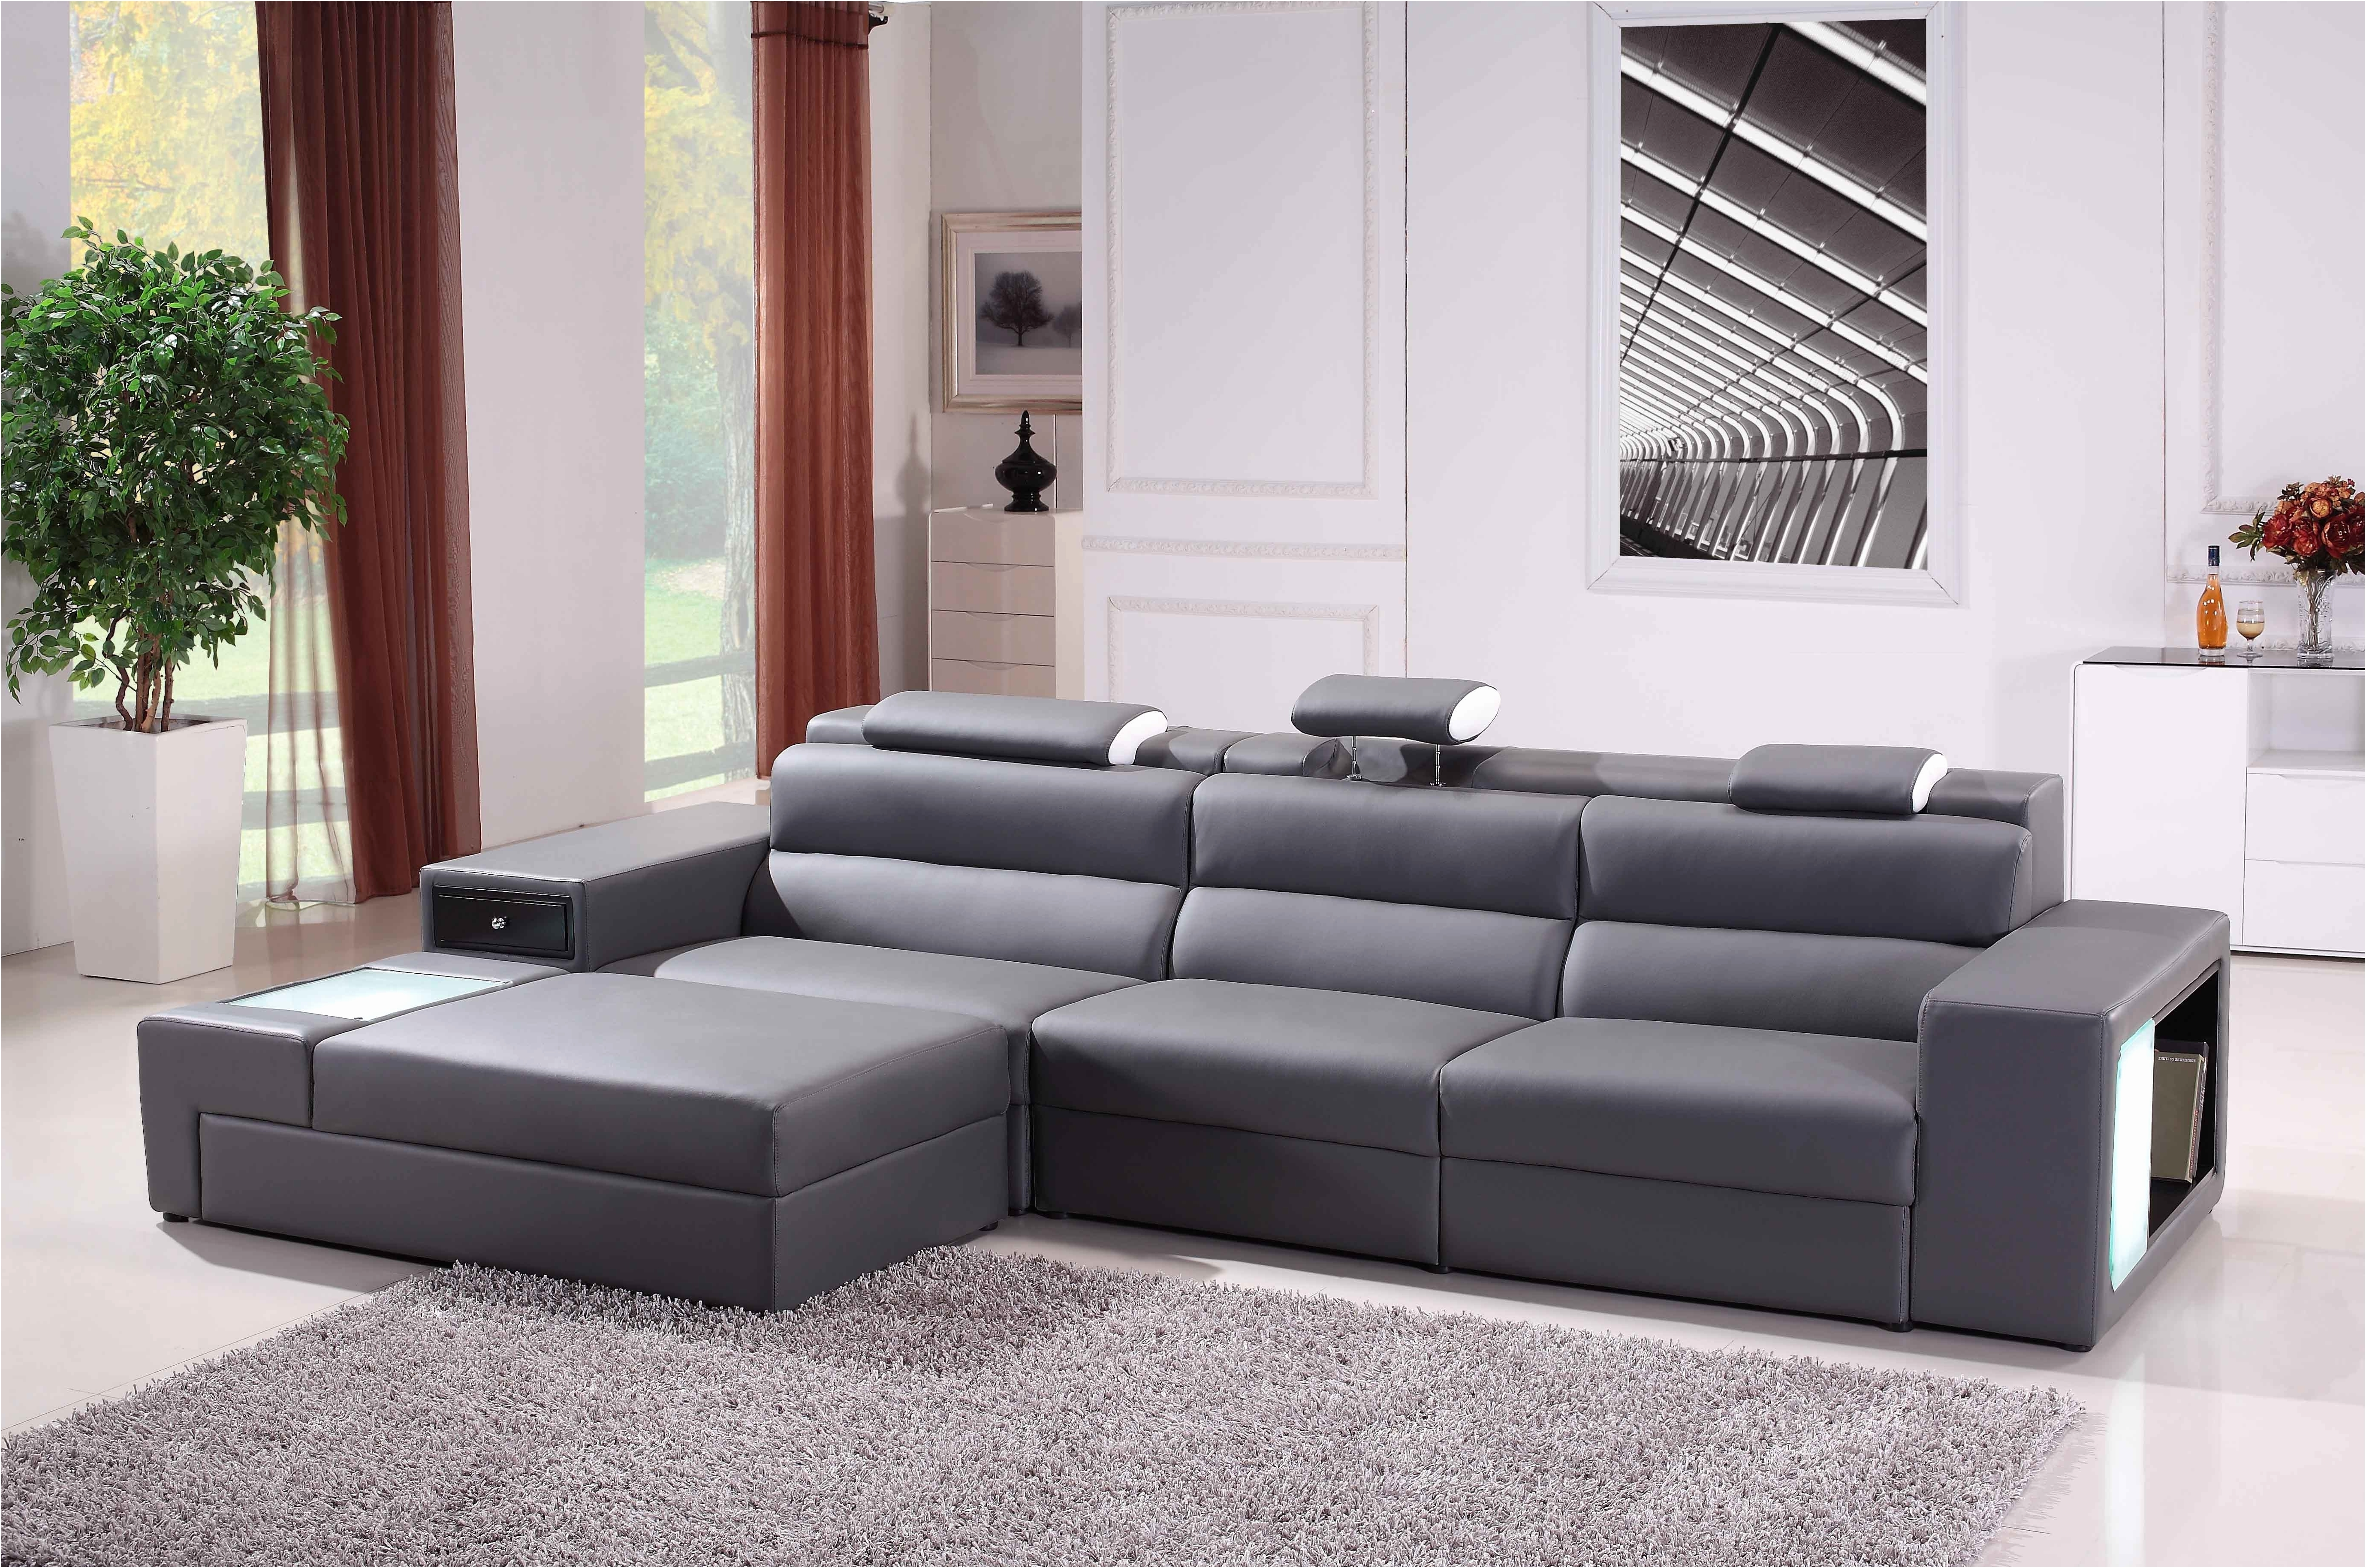 Light Gray Sectional Sofa Modern Grey Fabric Leather Mason Divani For Quebec Sectional Sofas (Image 9 of 10)